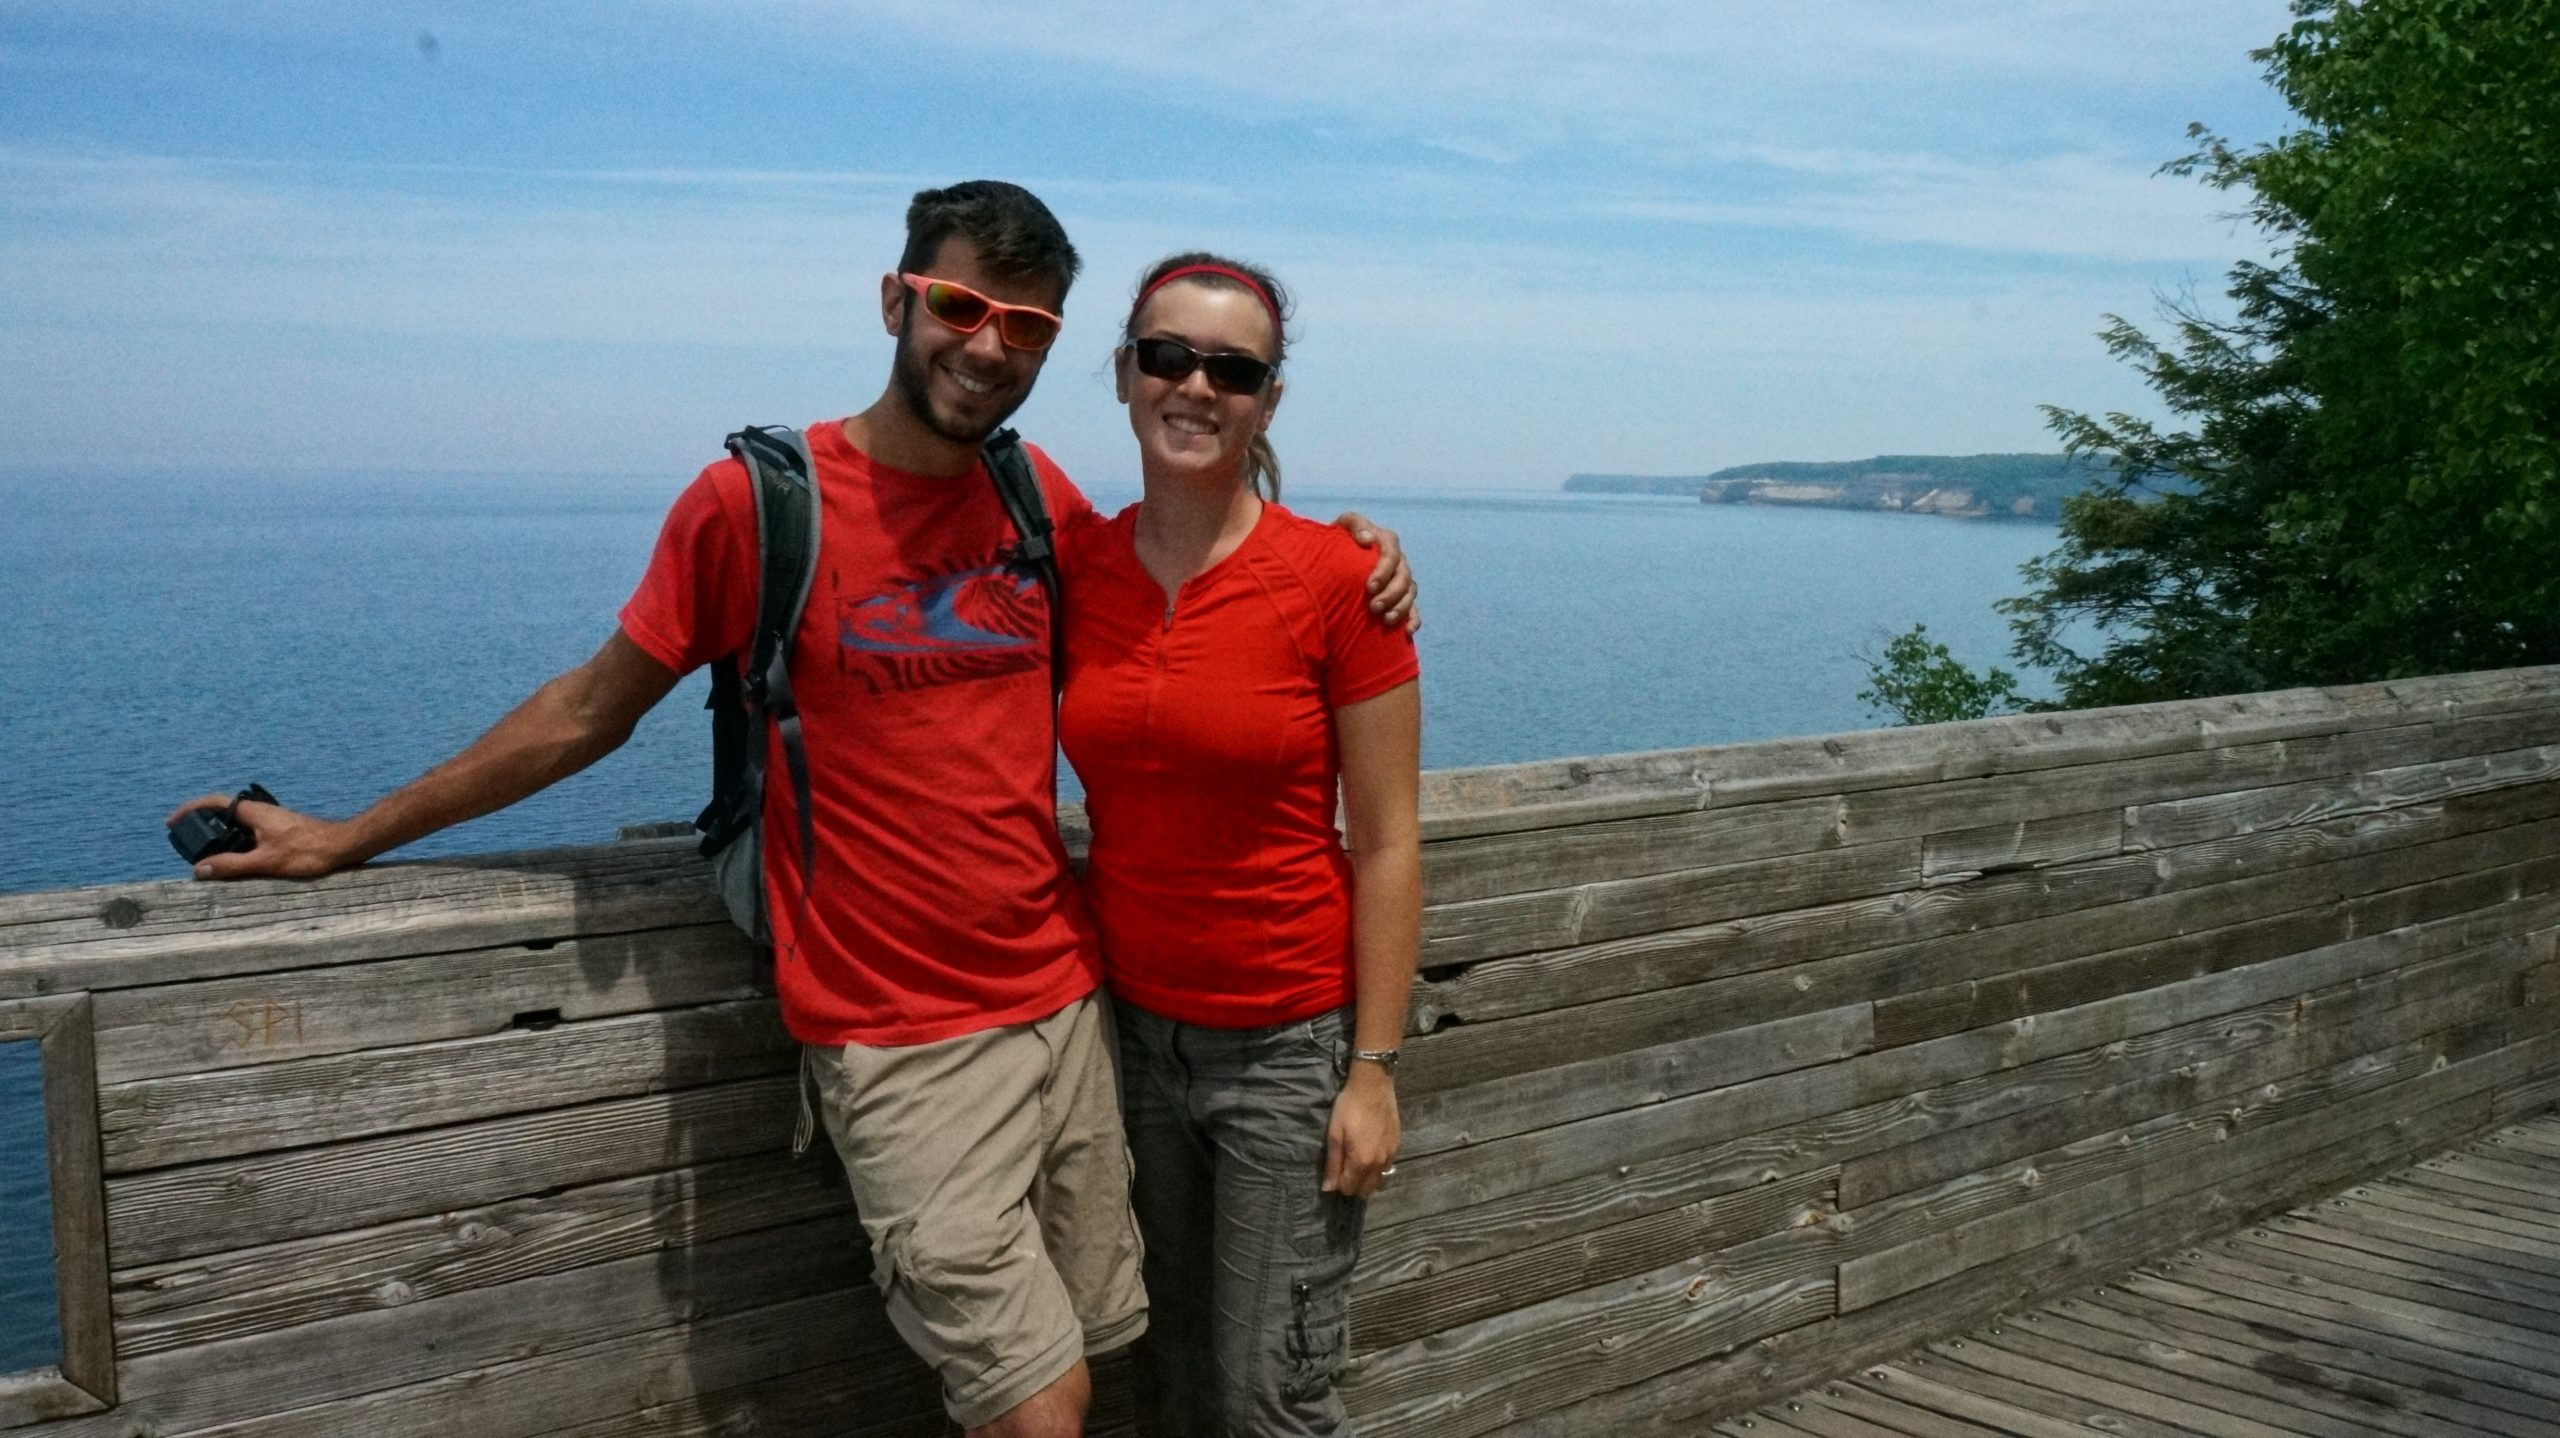 Mortons Hiking Pictured Rocks National Lakeshore in the Upper Peninsula